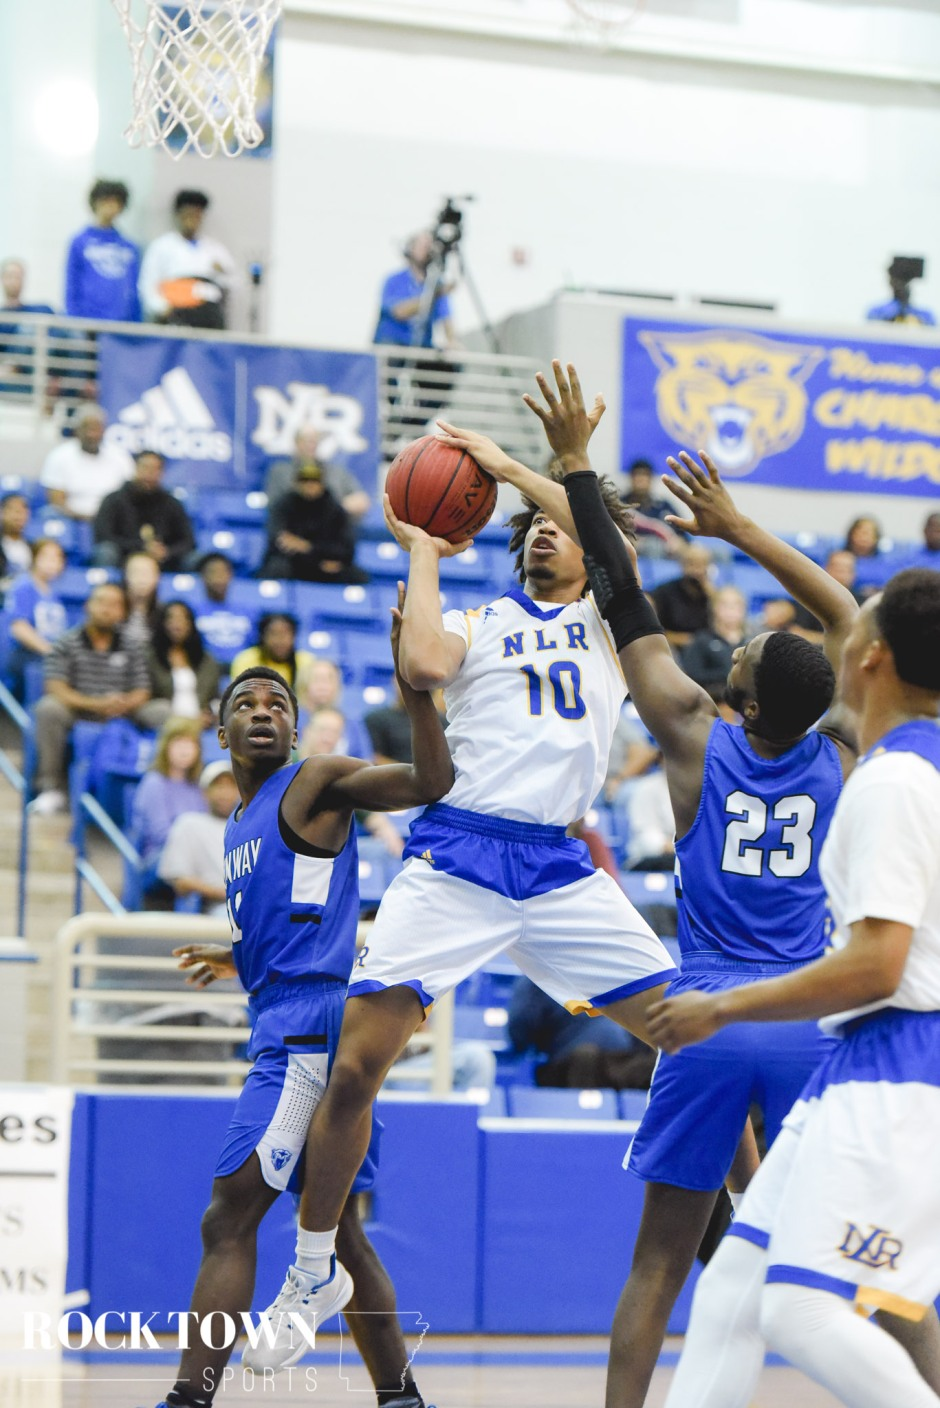 Conway_NLR_bball19(i)-52